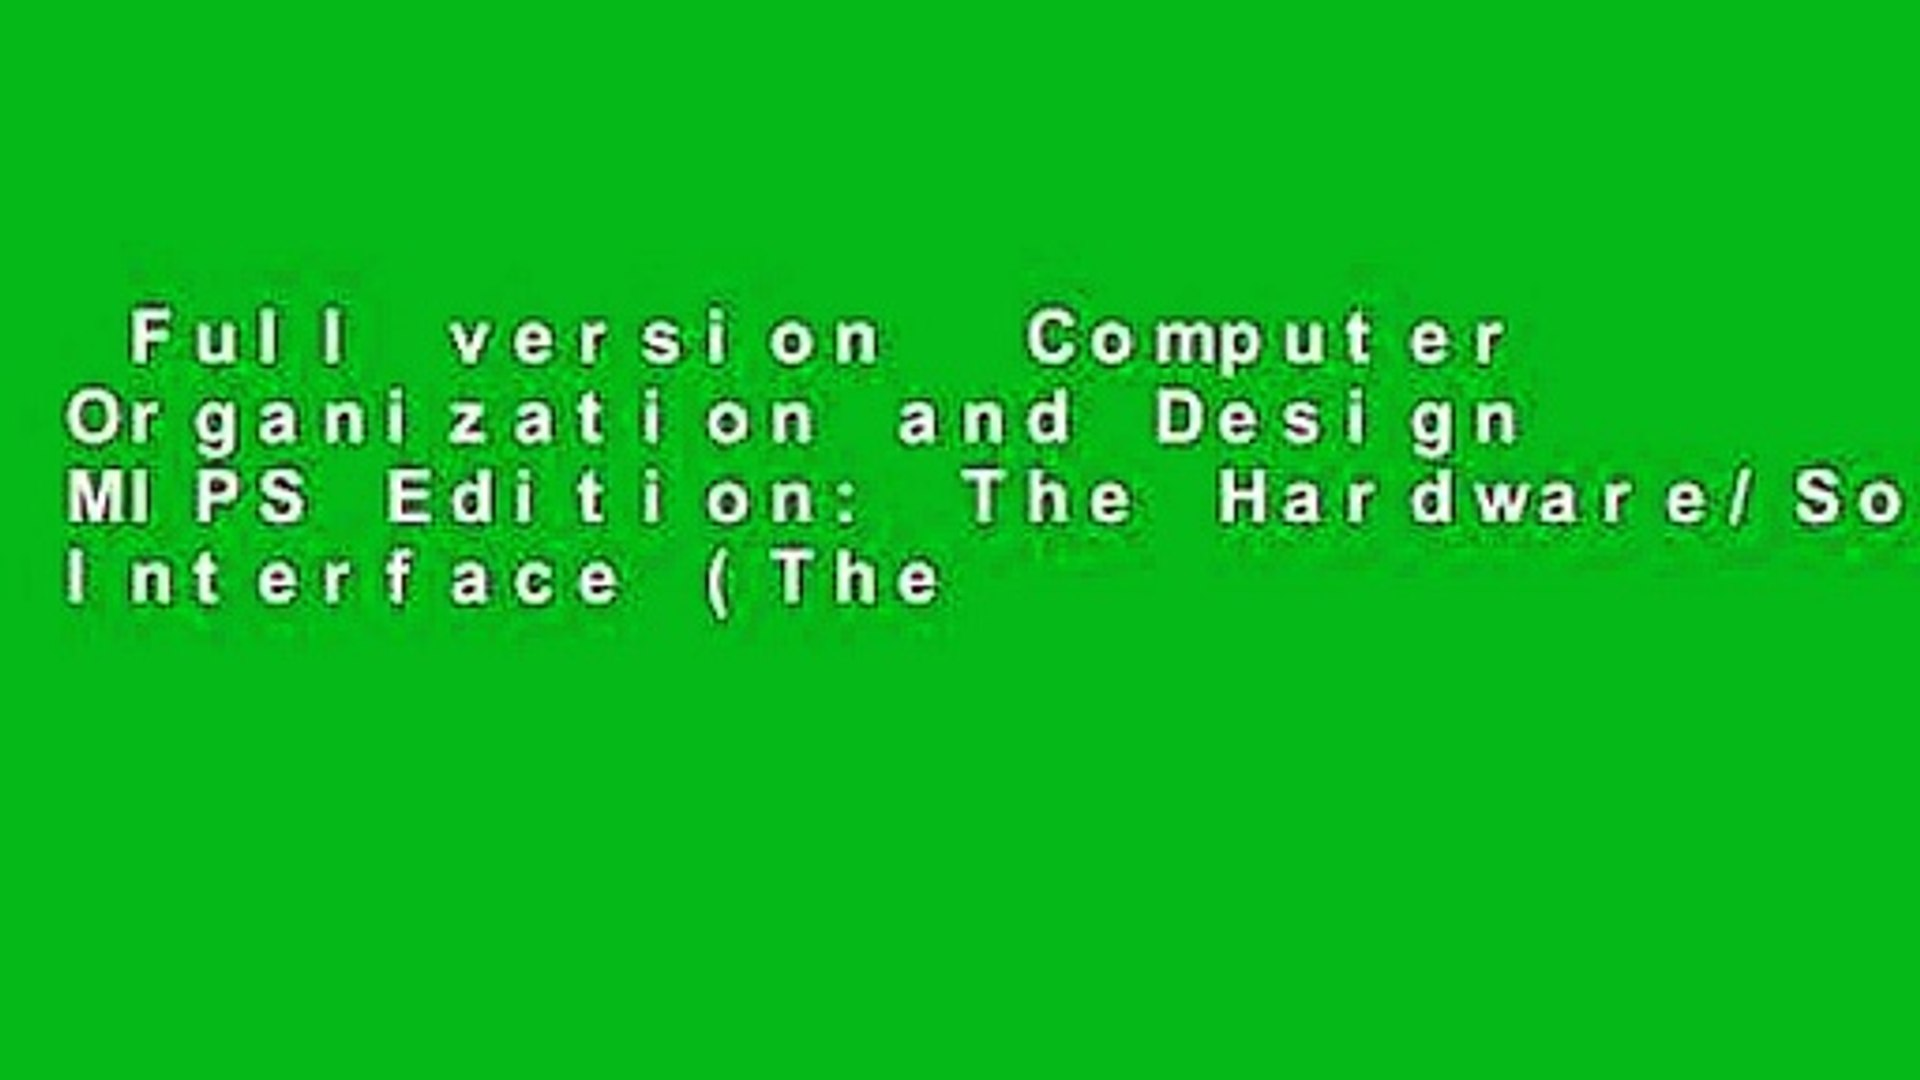 Full Version Computer Organization And Design Mips Edition The Hardware Software Interface The Video Dailymotion